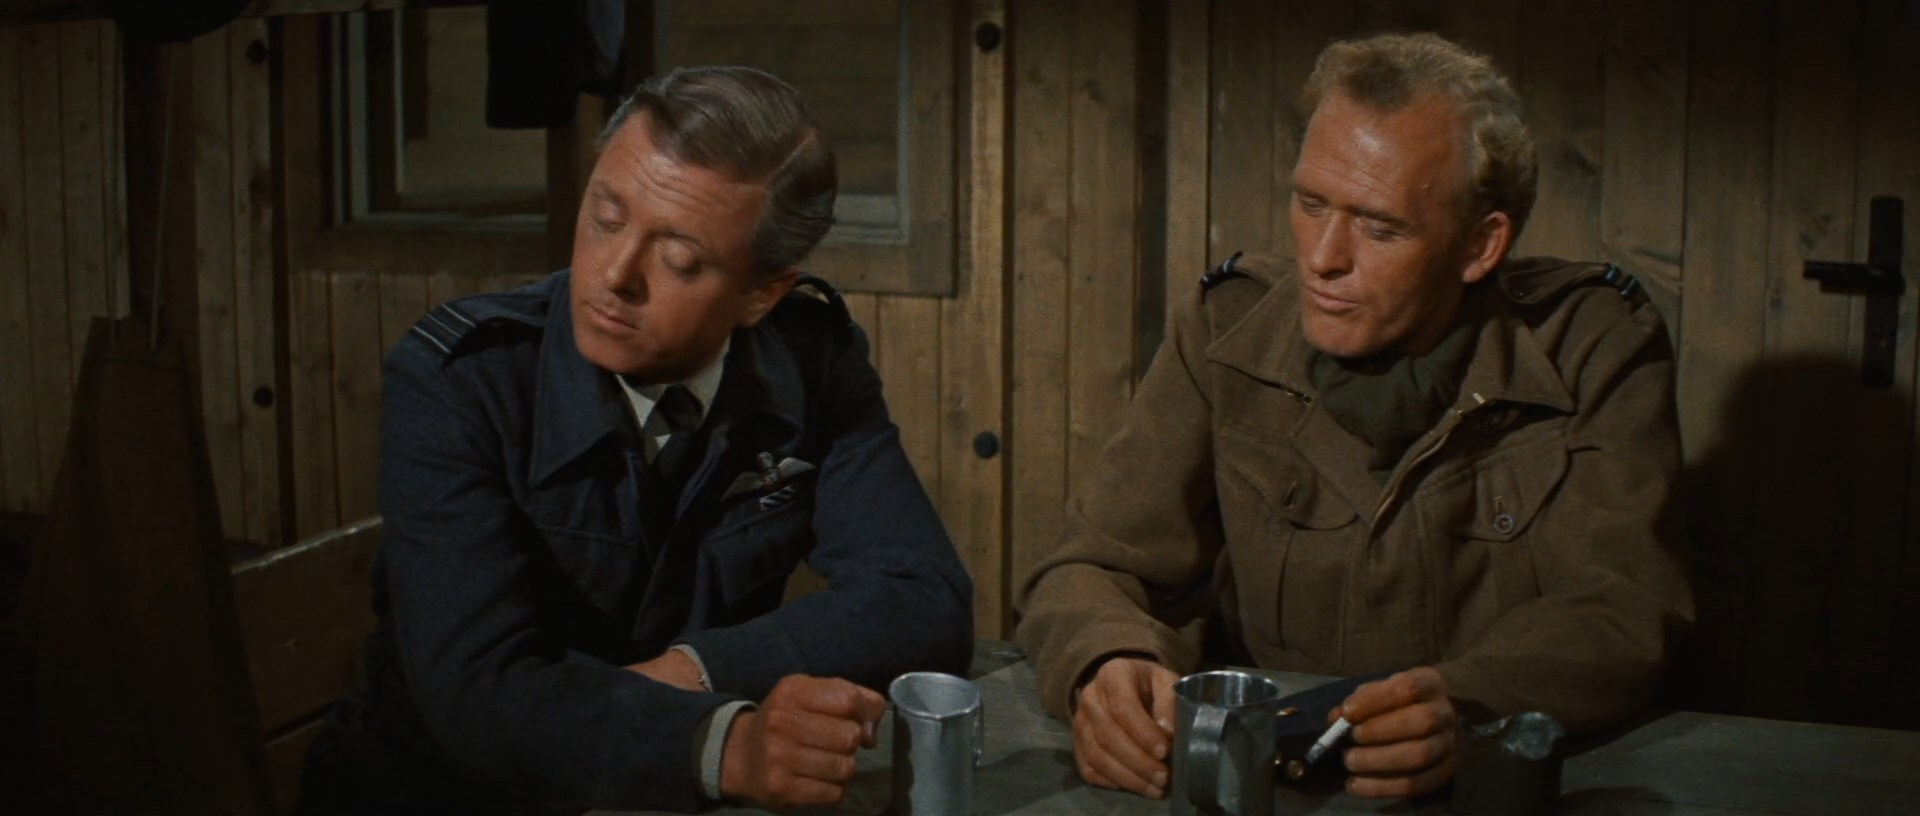 The Great Escape (1963) [Criterion Collection]